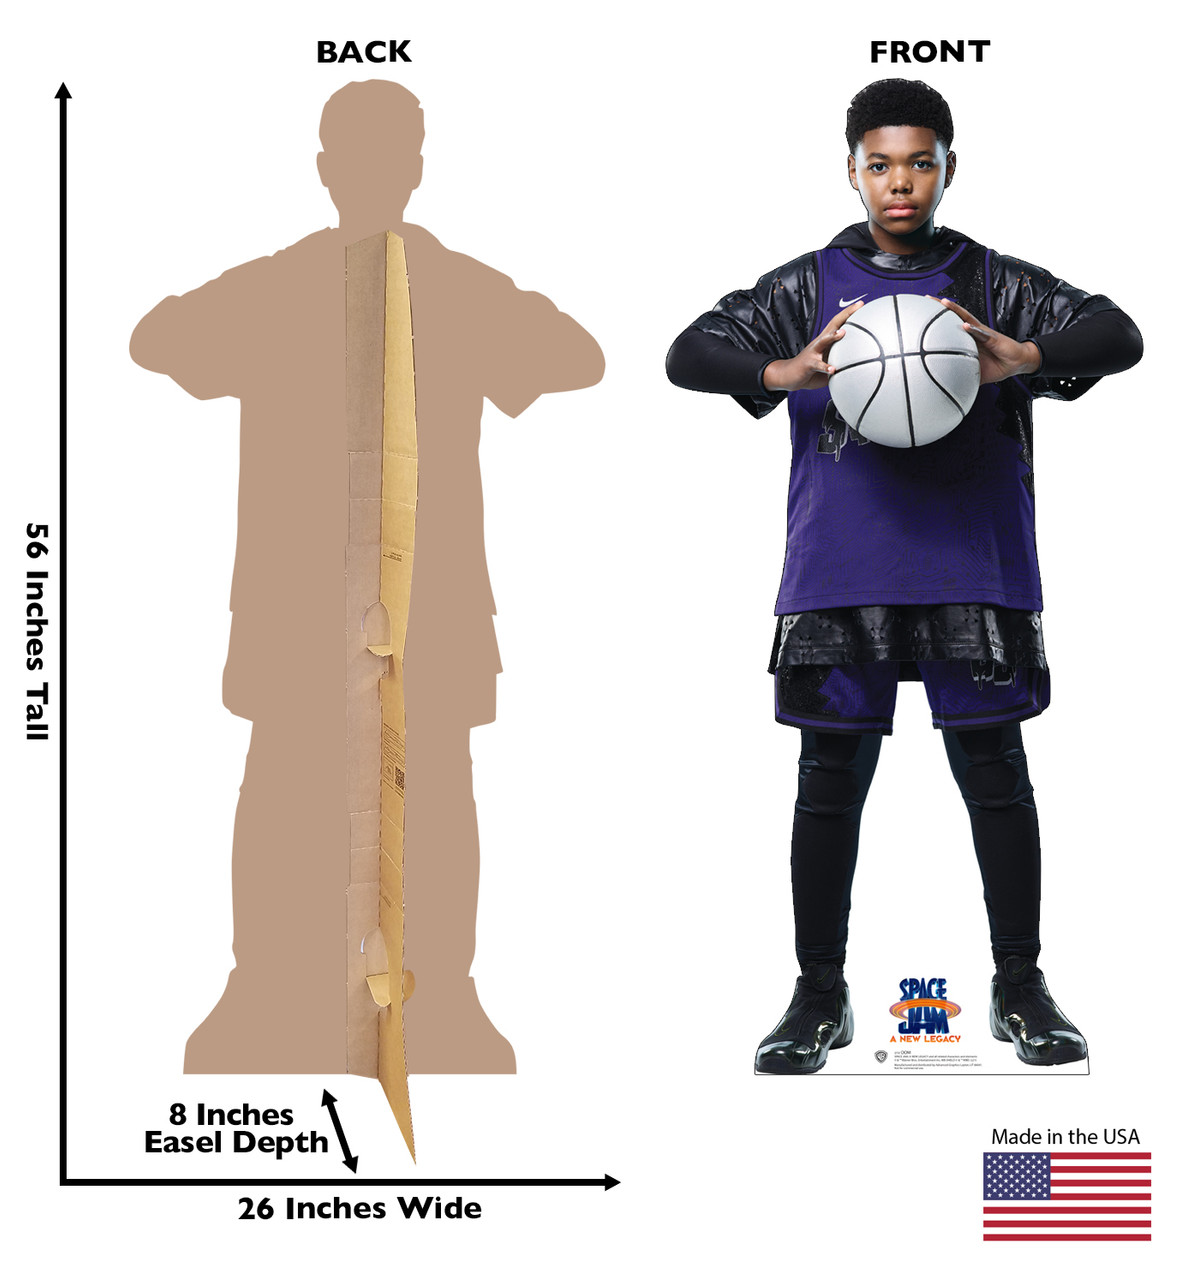 Life-size cardboard standee of Dom from Space Jam A New Legacy with front and back dimensions.